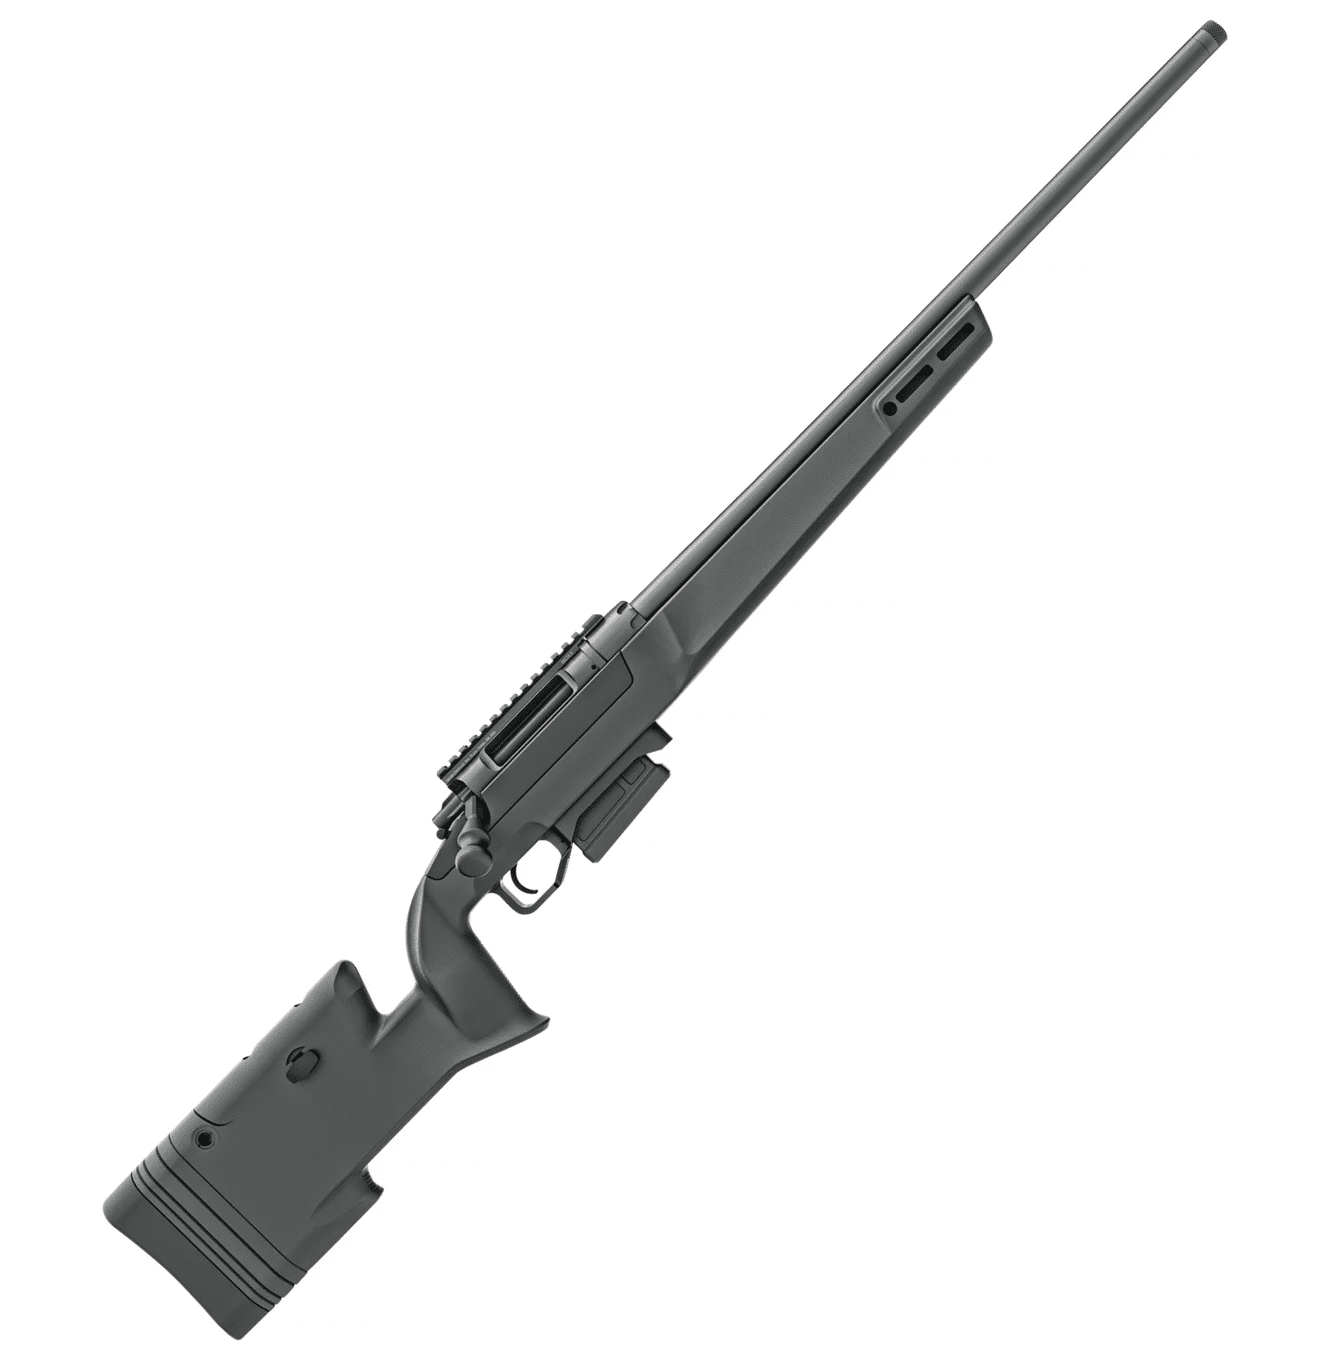 Best Hunting Rifle - Daniel Defense Delta 5 Bolt-Action Rifle - 6.5 Creedmoor